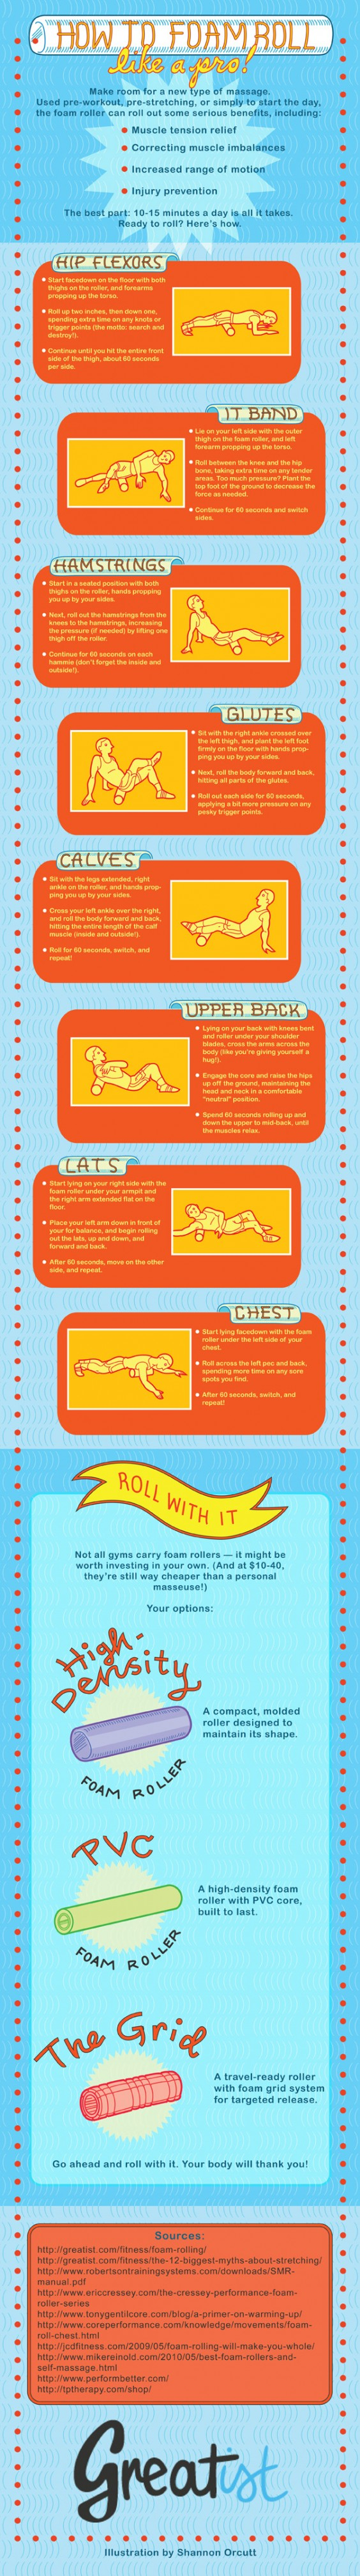 Foam Rolling Infographic